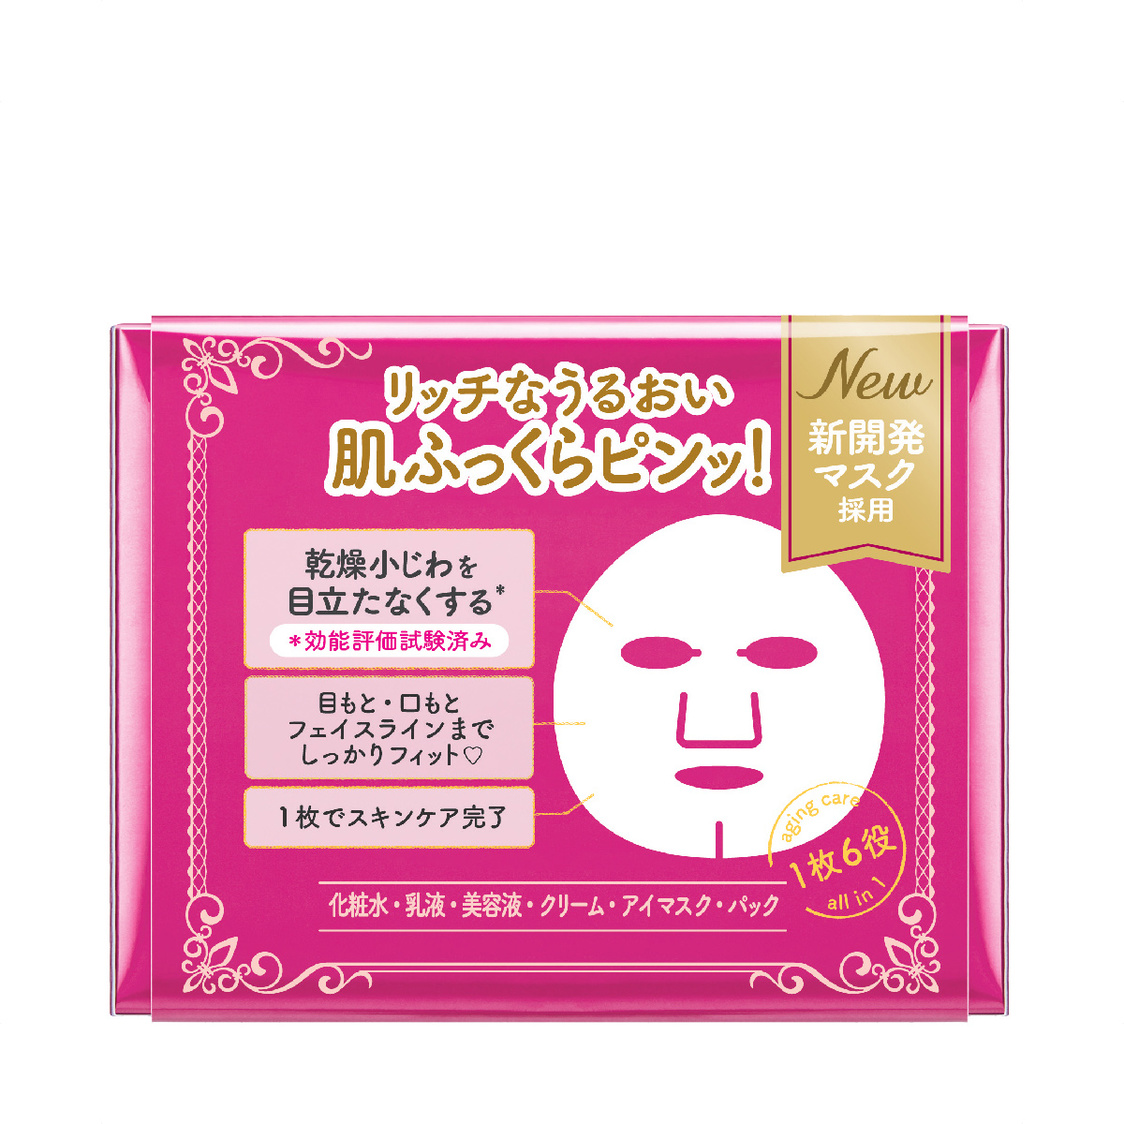 Princess Veil Aging Care Mask 46s